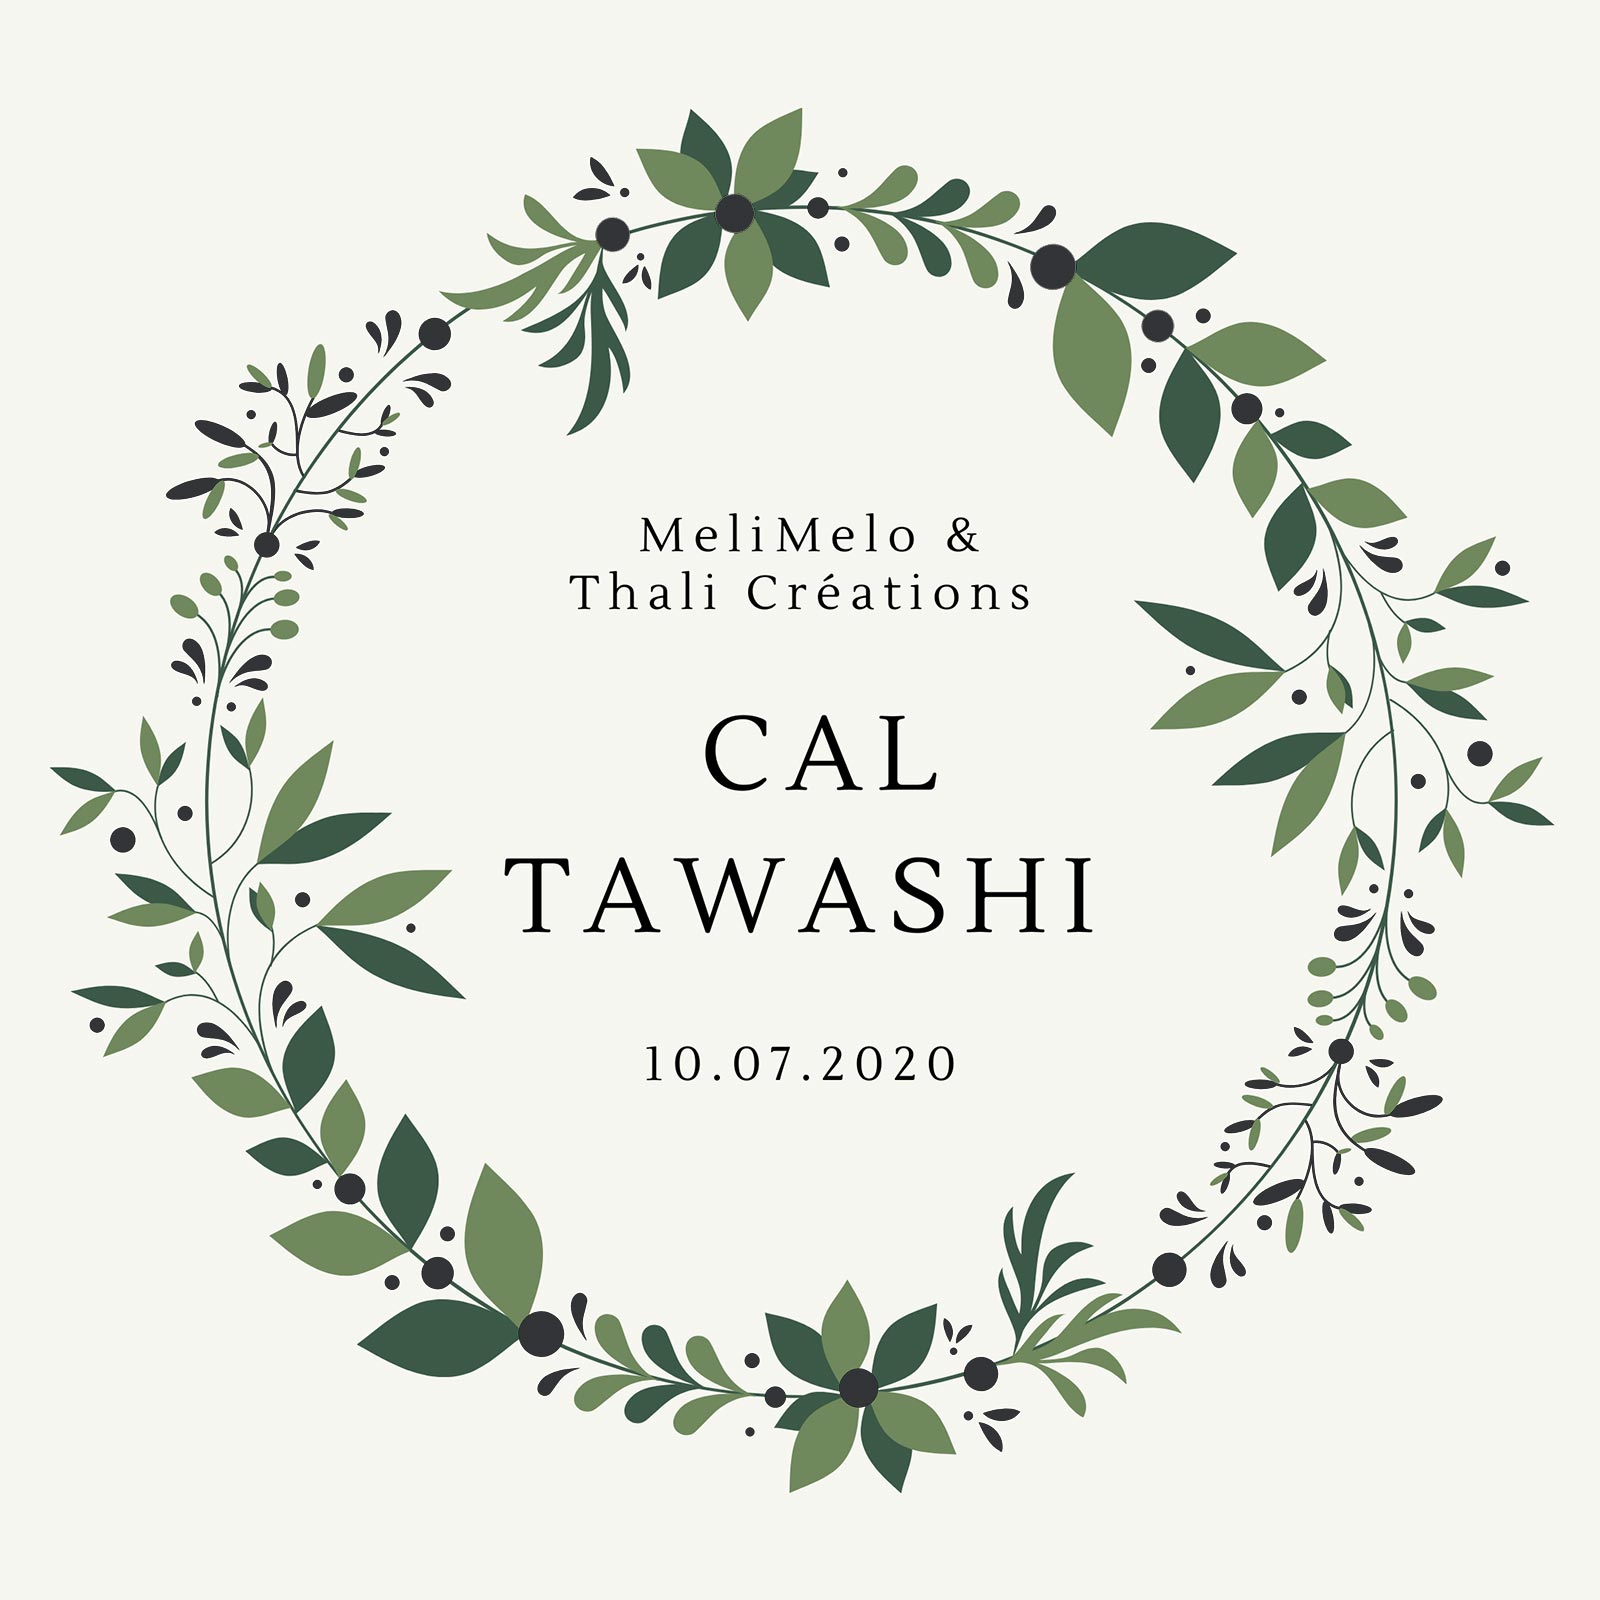 CAL crochet tawashi thalicréations laboutiquedemelimelo